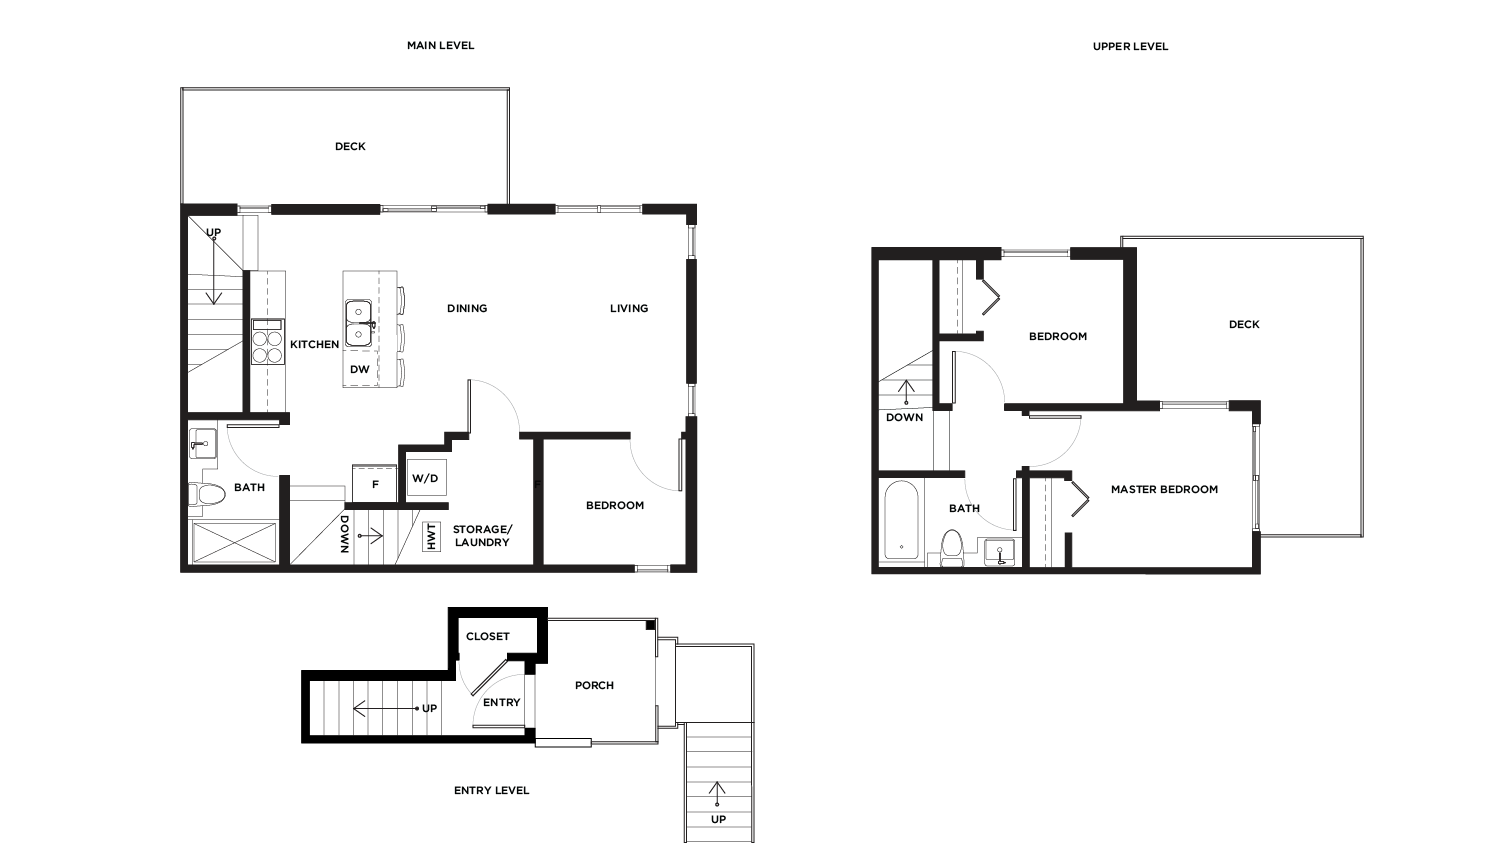 Ward C1/2 upper level floor plan for Vicini Homes Vancouver townhouses.